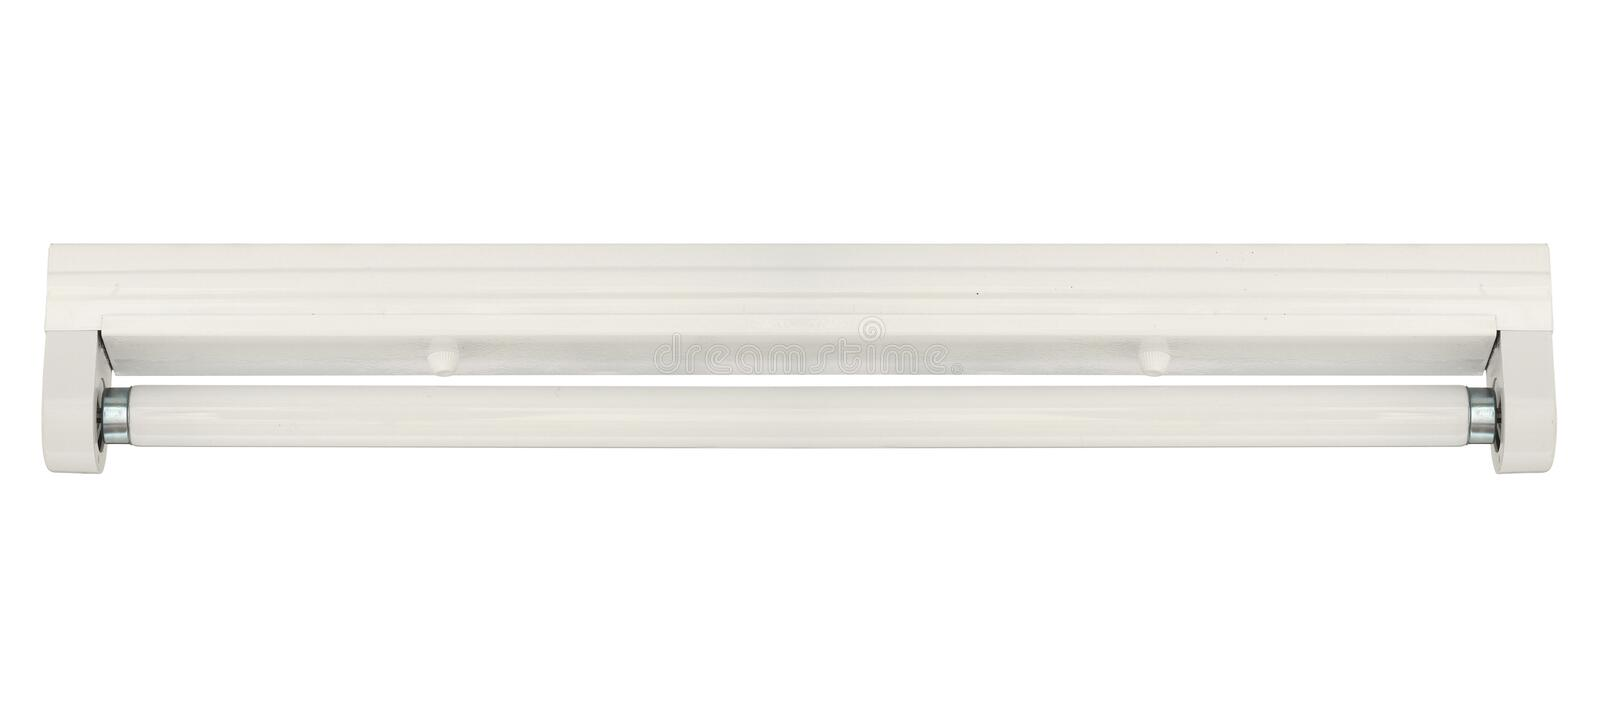 Download Batten Fitting And Fluorescent Lamp Stock Image - Image: 29565533